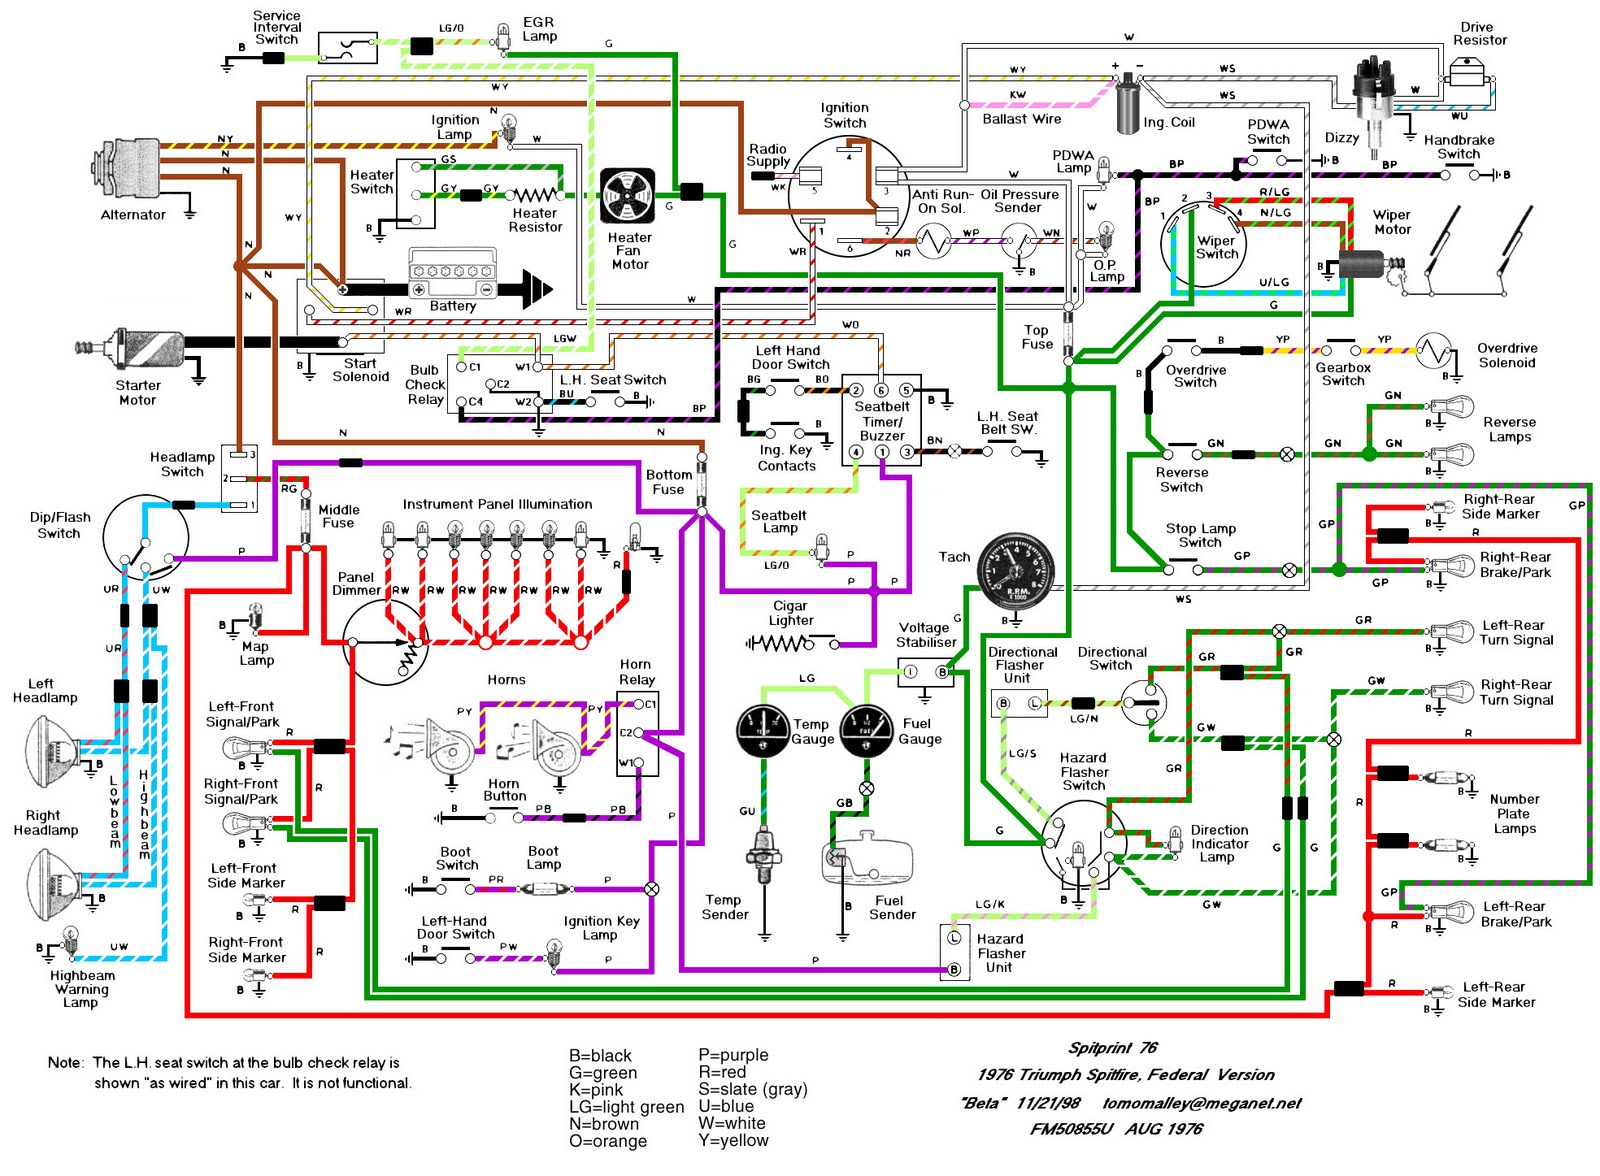 wiring diagram for a switch for a car stereo the wiring diagram pioneer car stereo wiring color codes vidim wiring diagram wiring diagram